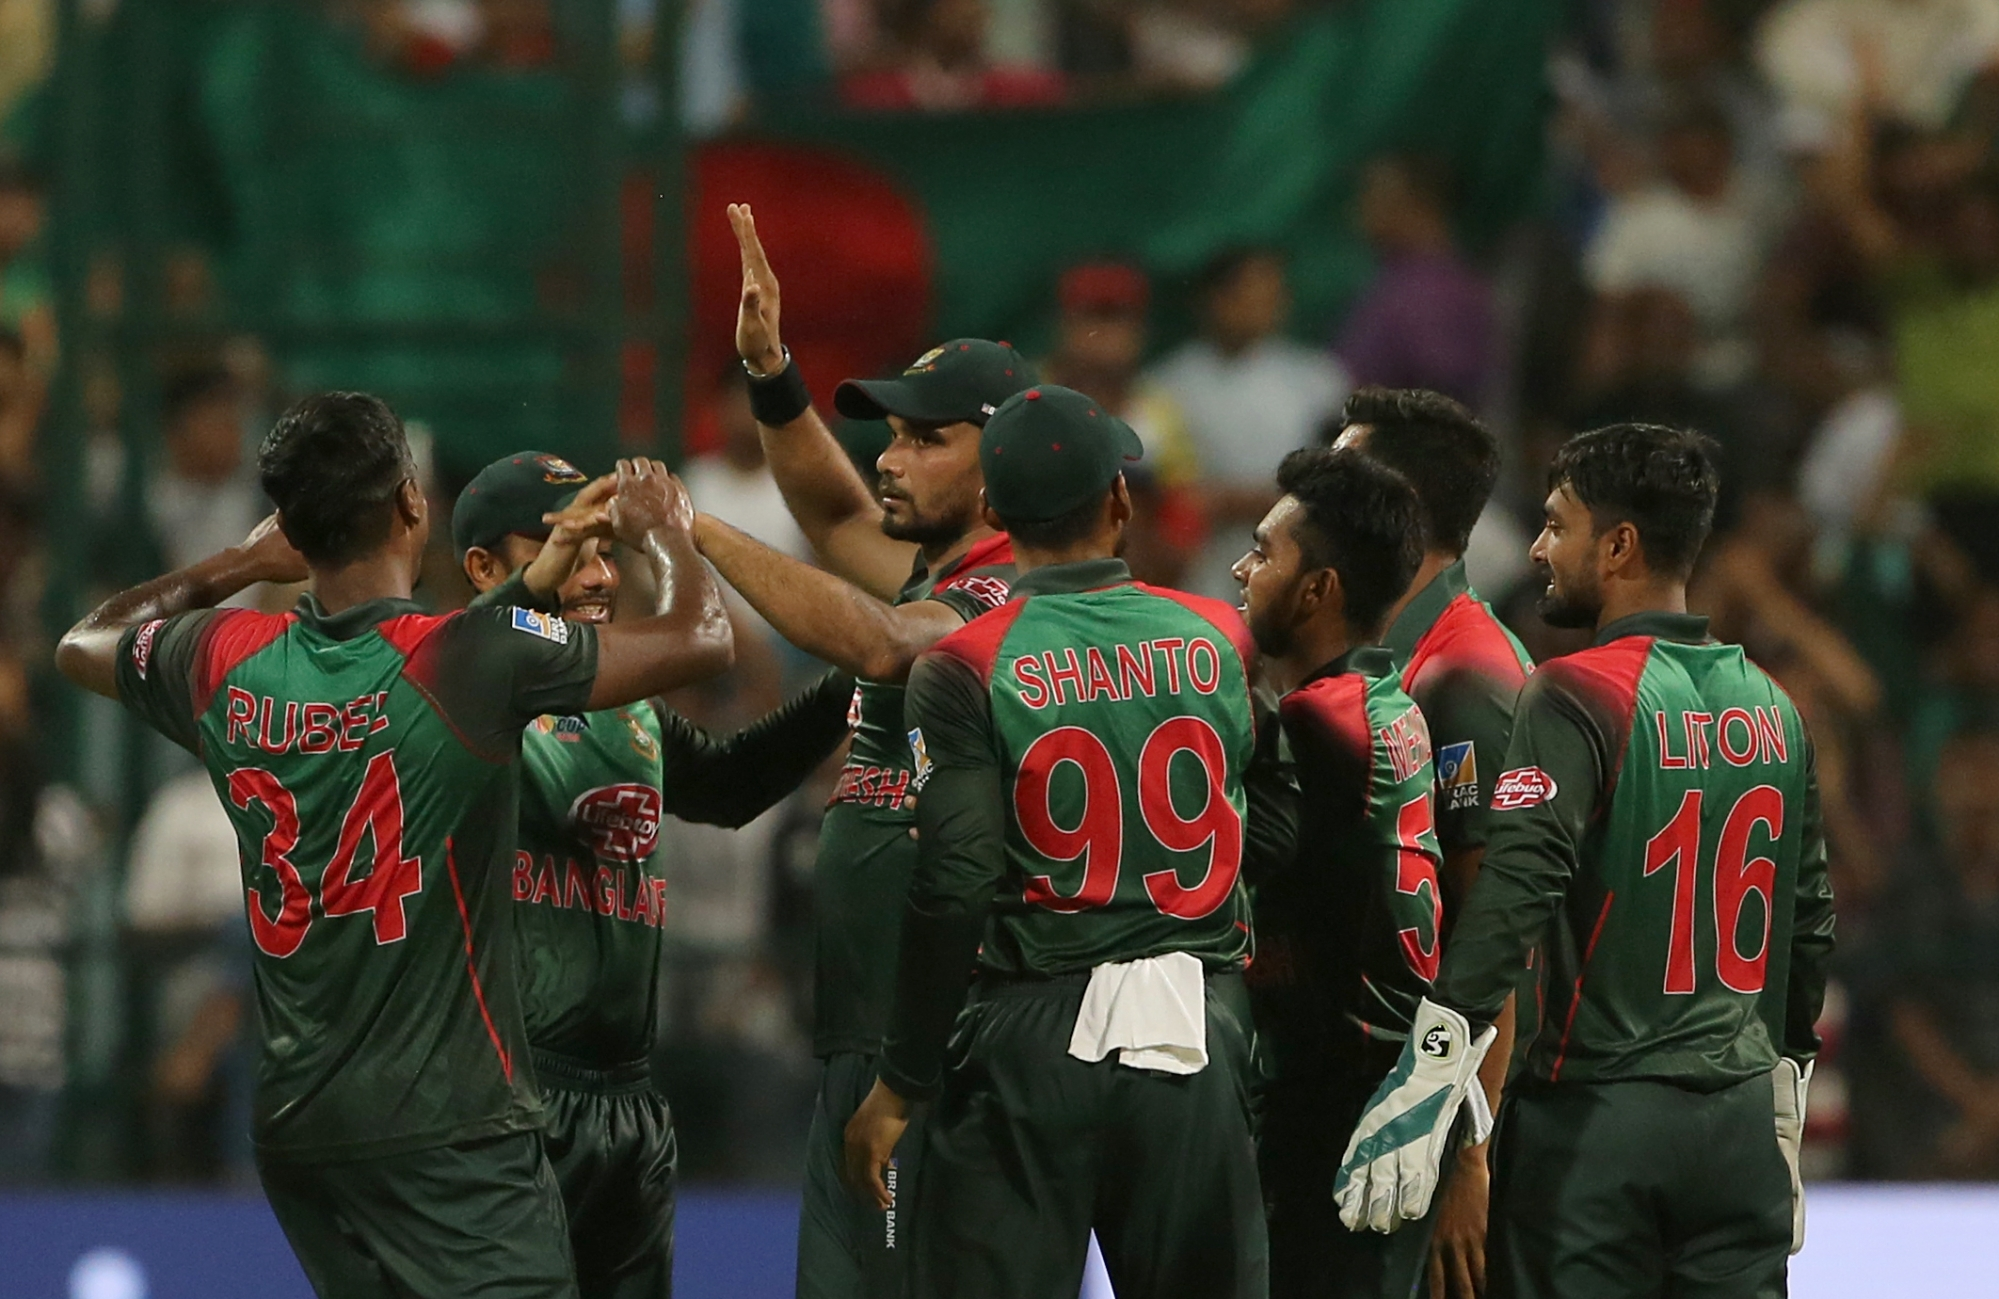 Bangladesh Script History by Beating India 1st Time in a T20I match, End 8–0 Losing Streak Against Men in Blue in Shortest Format of Cricket